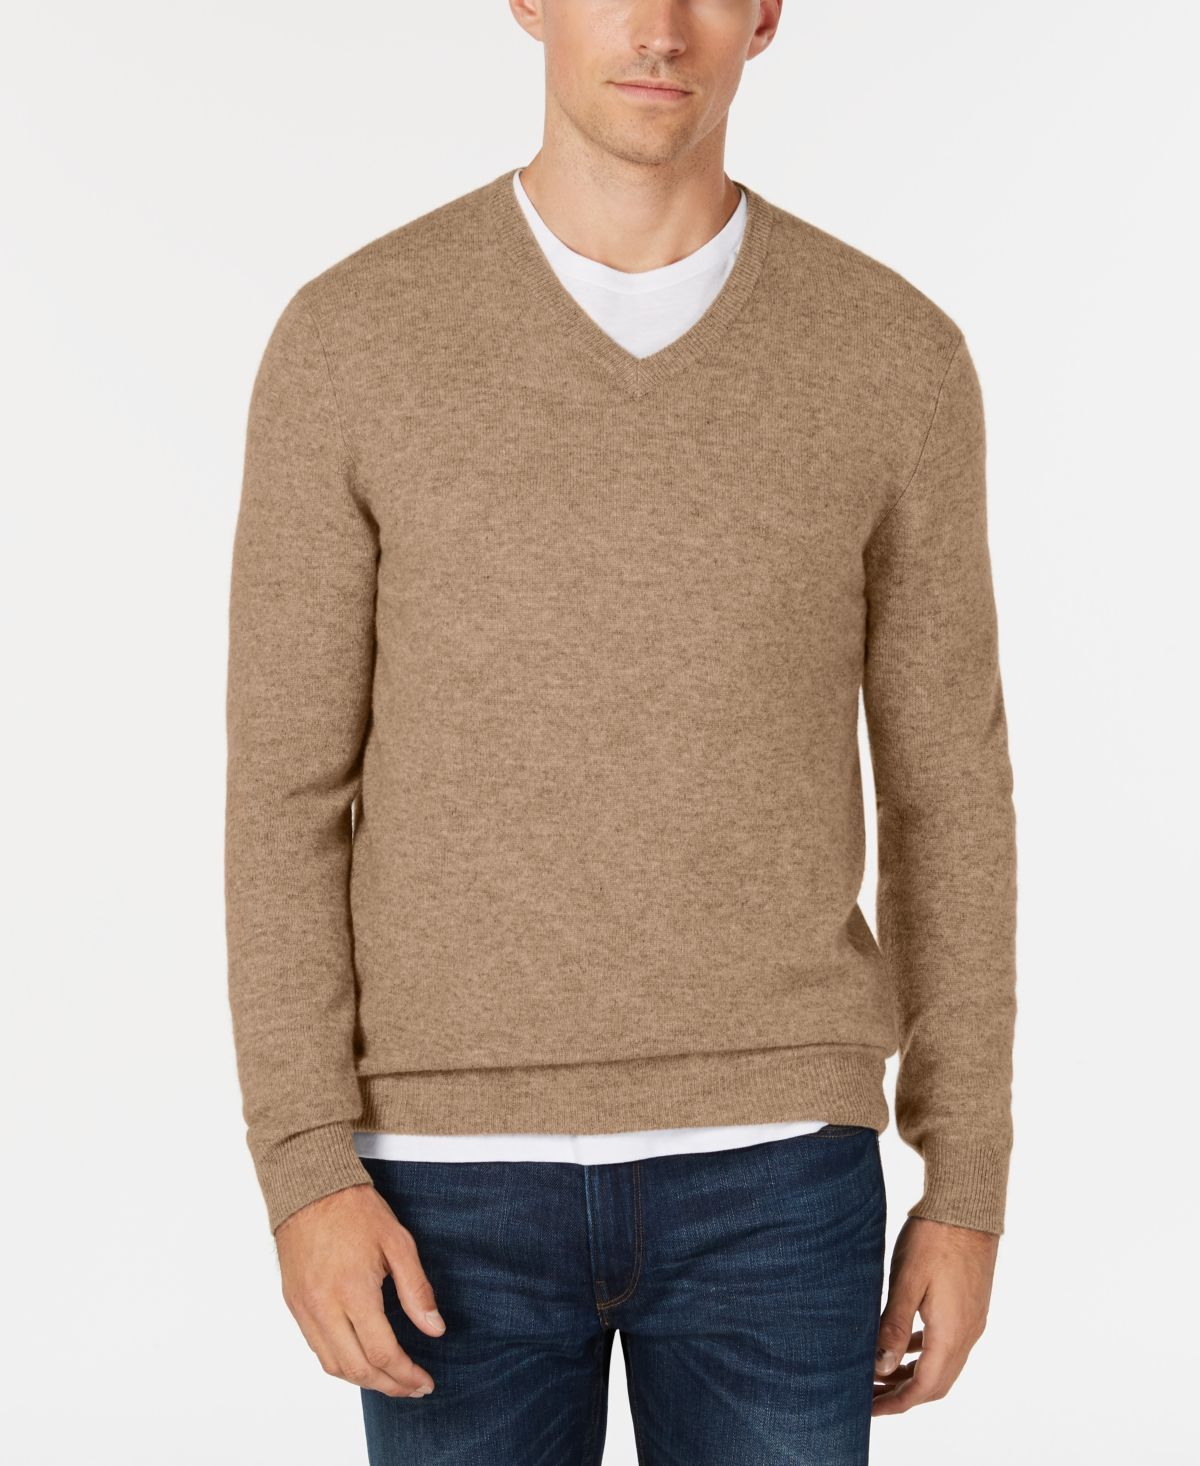 Club Room Men S V Neck Cashmere Sweater Created For Macy S Dark Natural Heather Men Sweater Cashmere Sweaters Club Room [ 1466 x 1200 Pixel ]